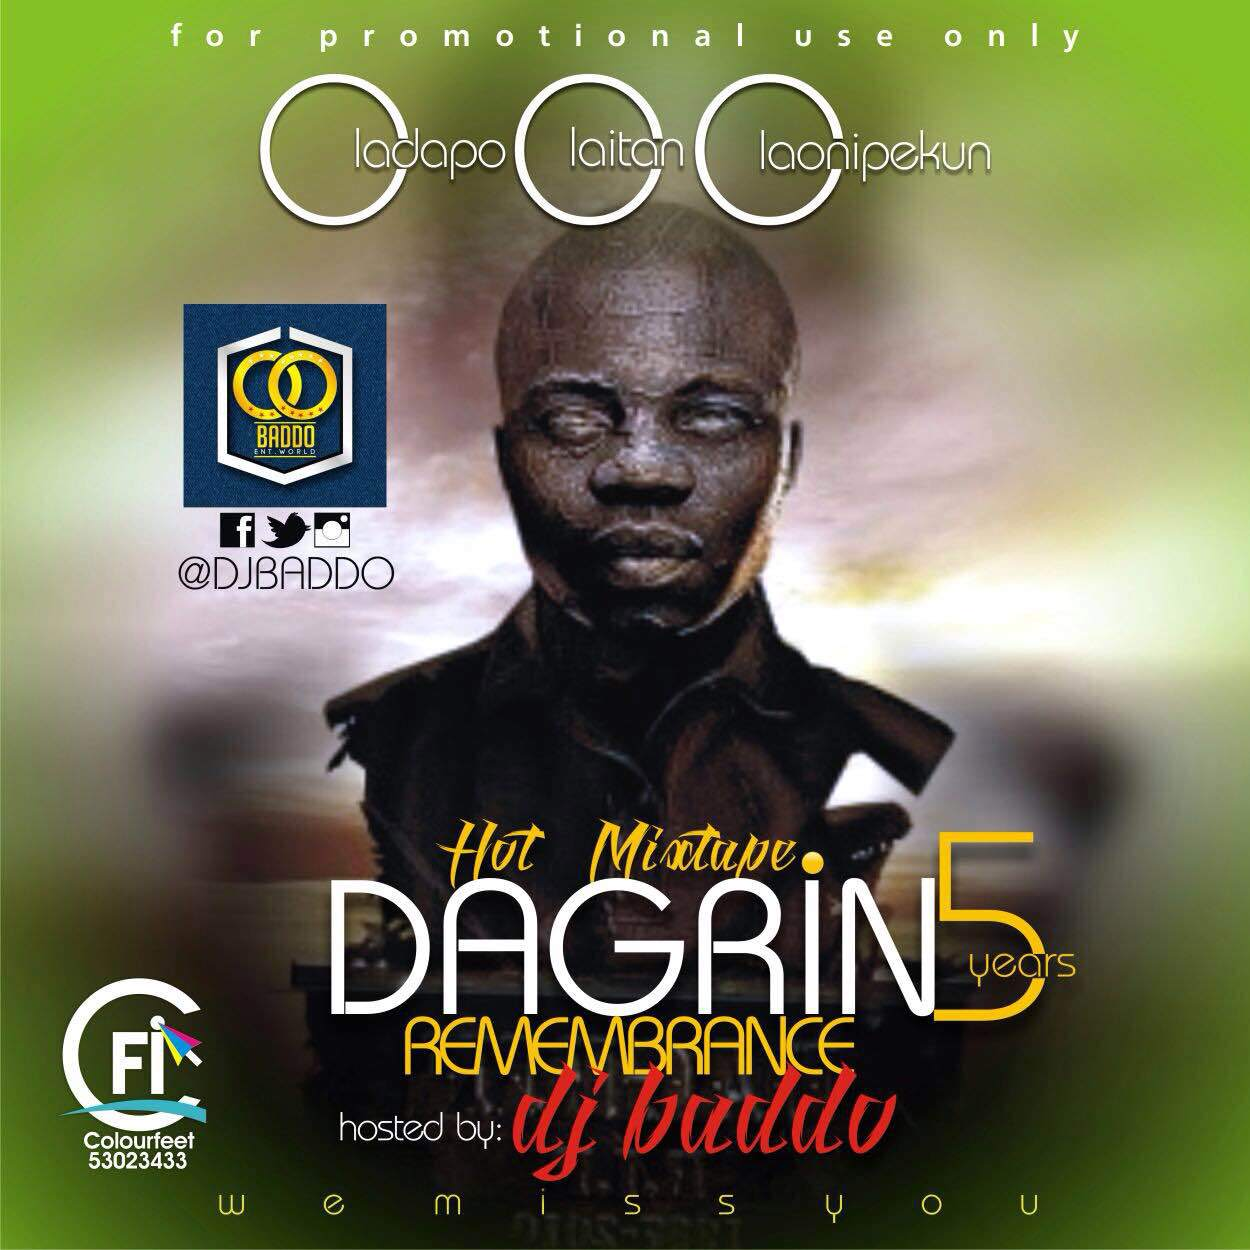 Dj Baddo - Best Of Dagrin [MixTape]